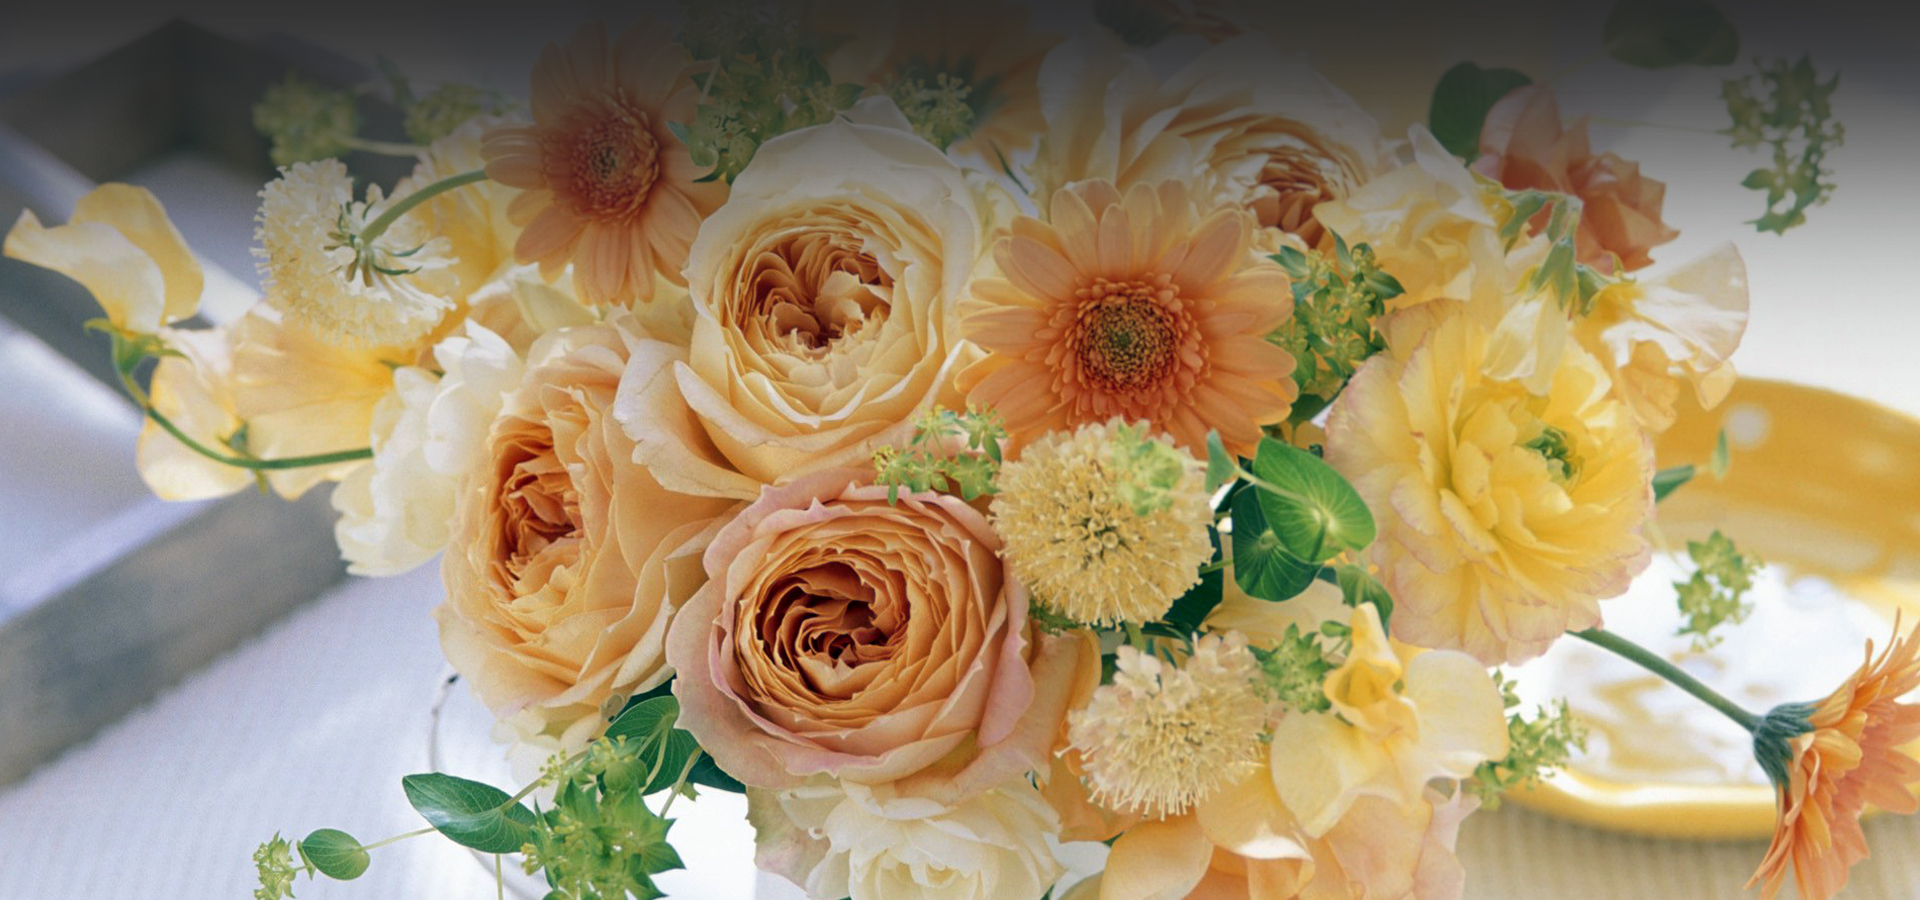 <h2>Happy Wedding</h2><p>Florist Artist</p>